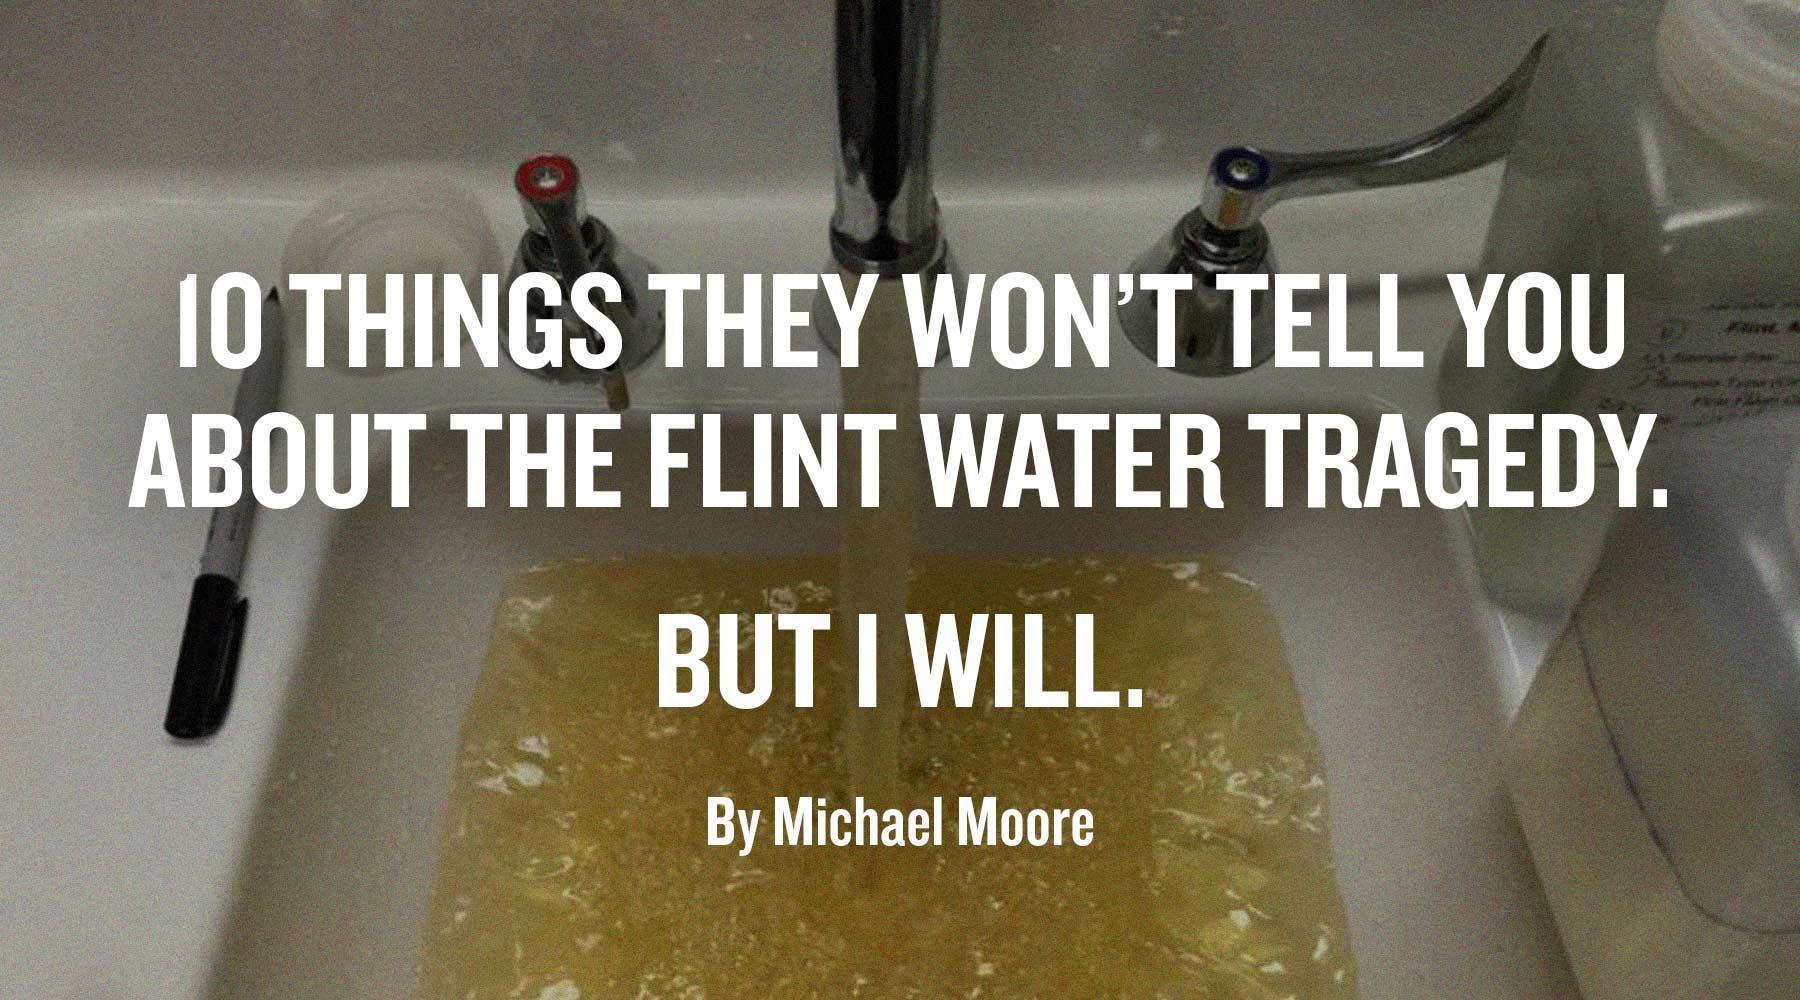 10 Things They Won't Tell You About the Flint Water Tragedy